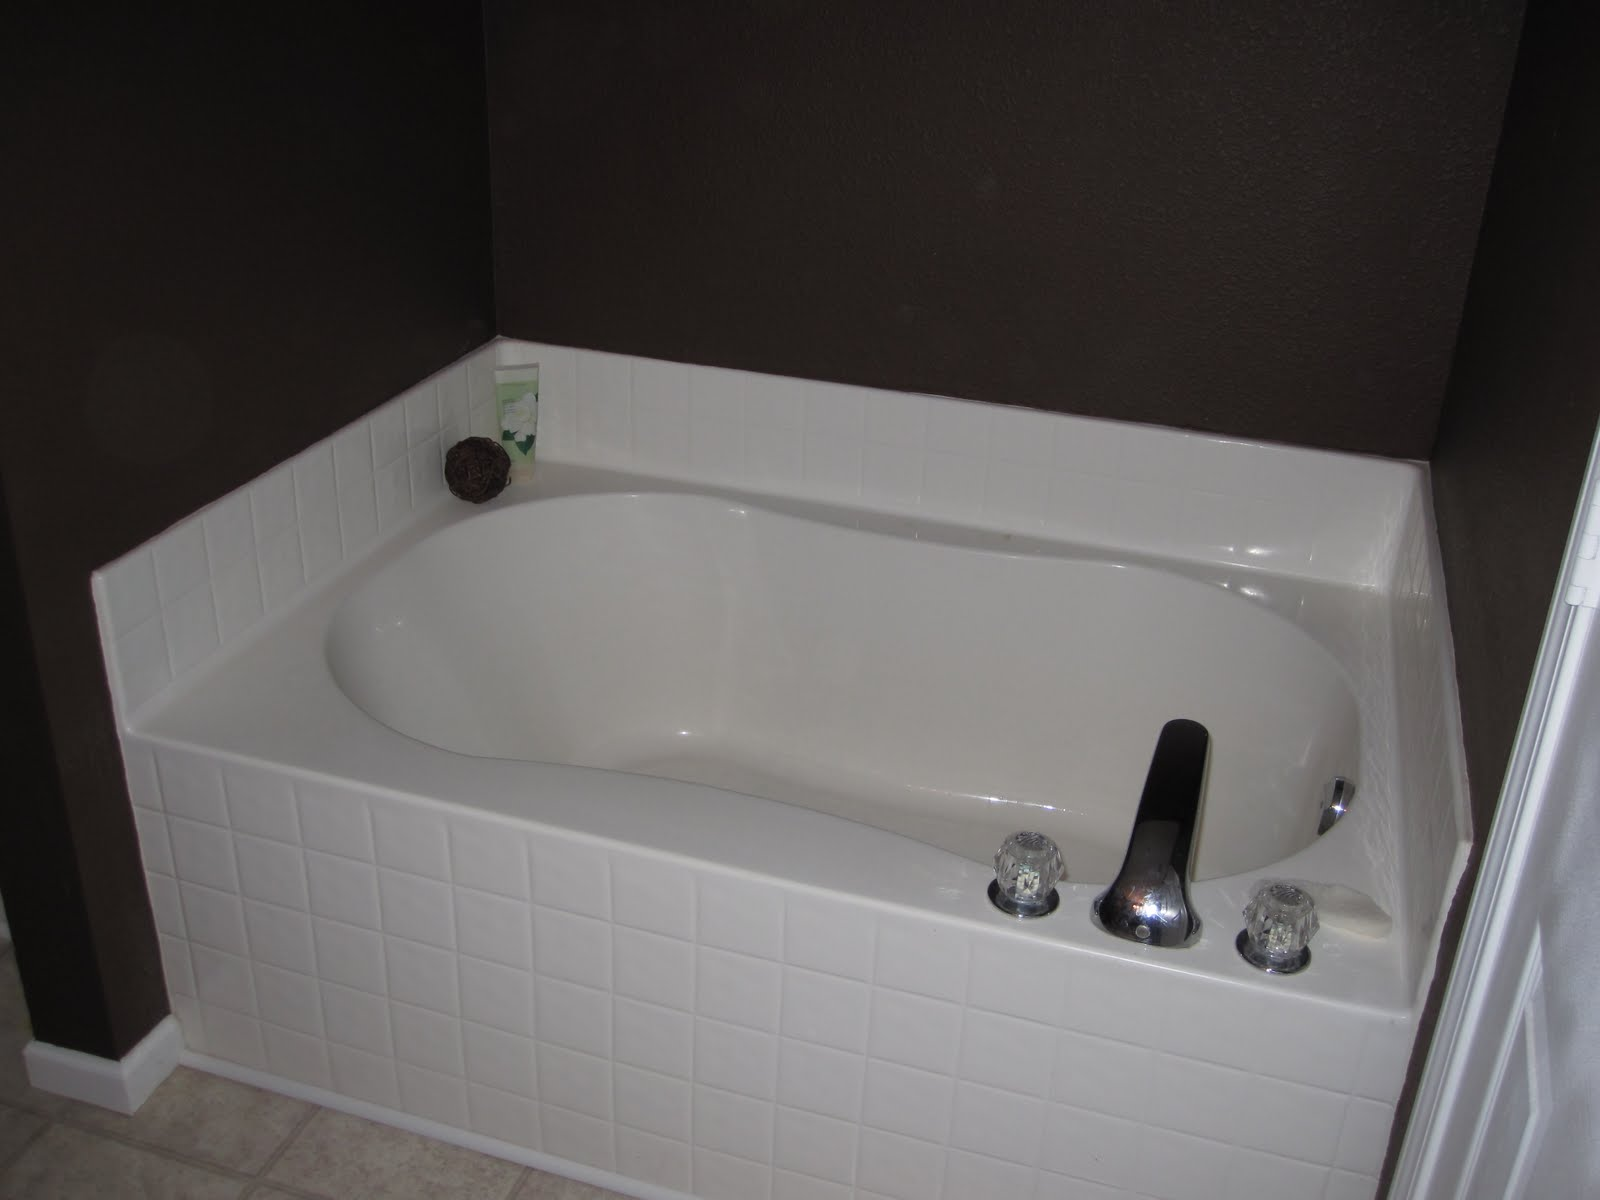 Thrifty Like Me: Master Bathroom: Garden Tub